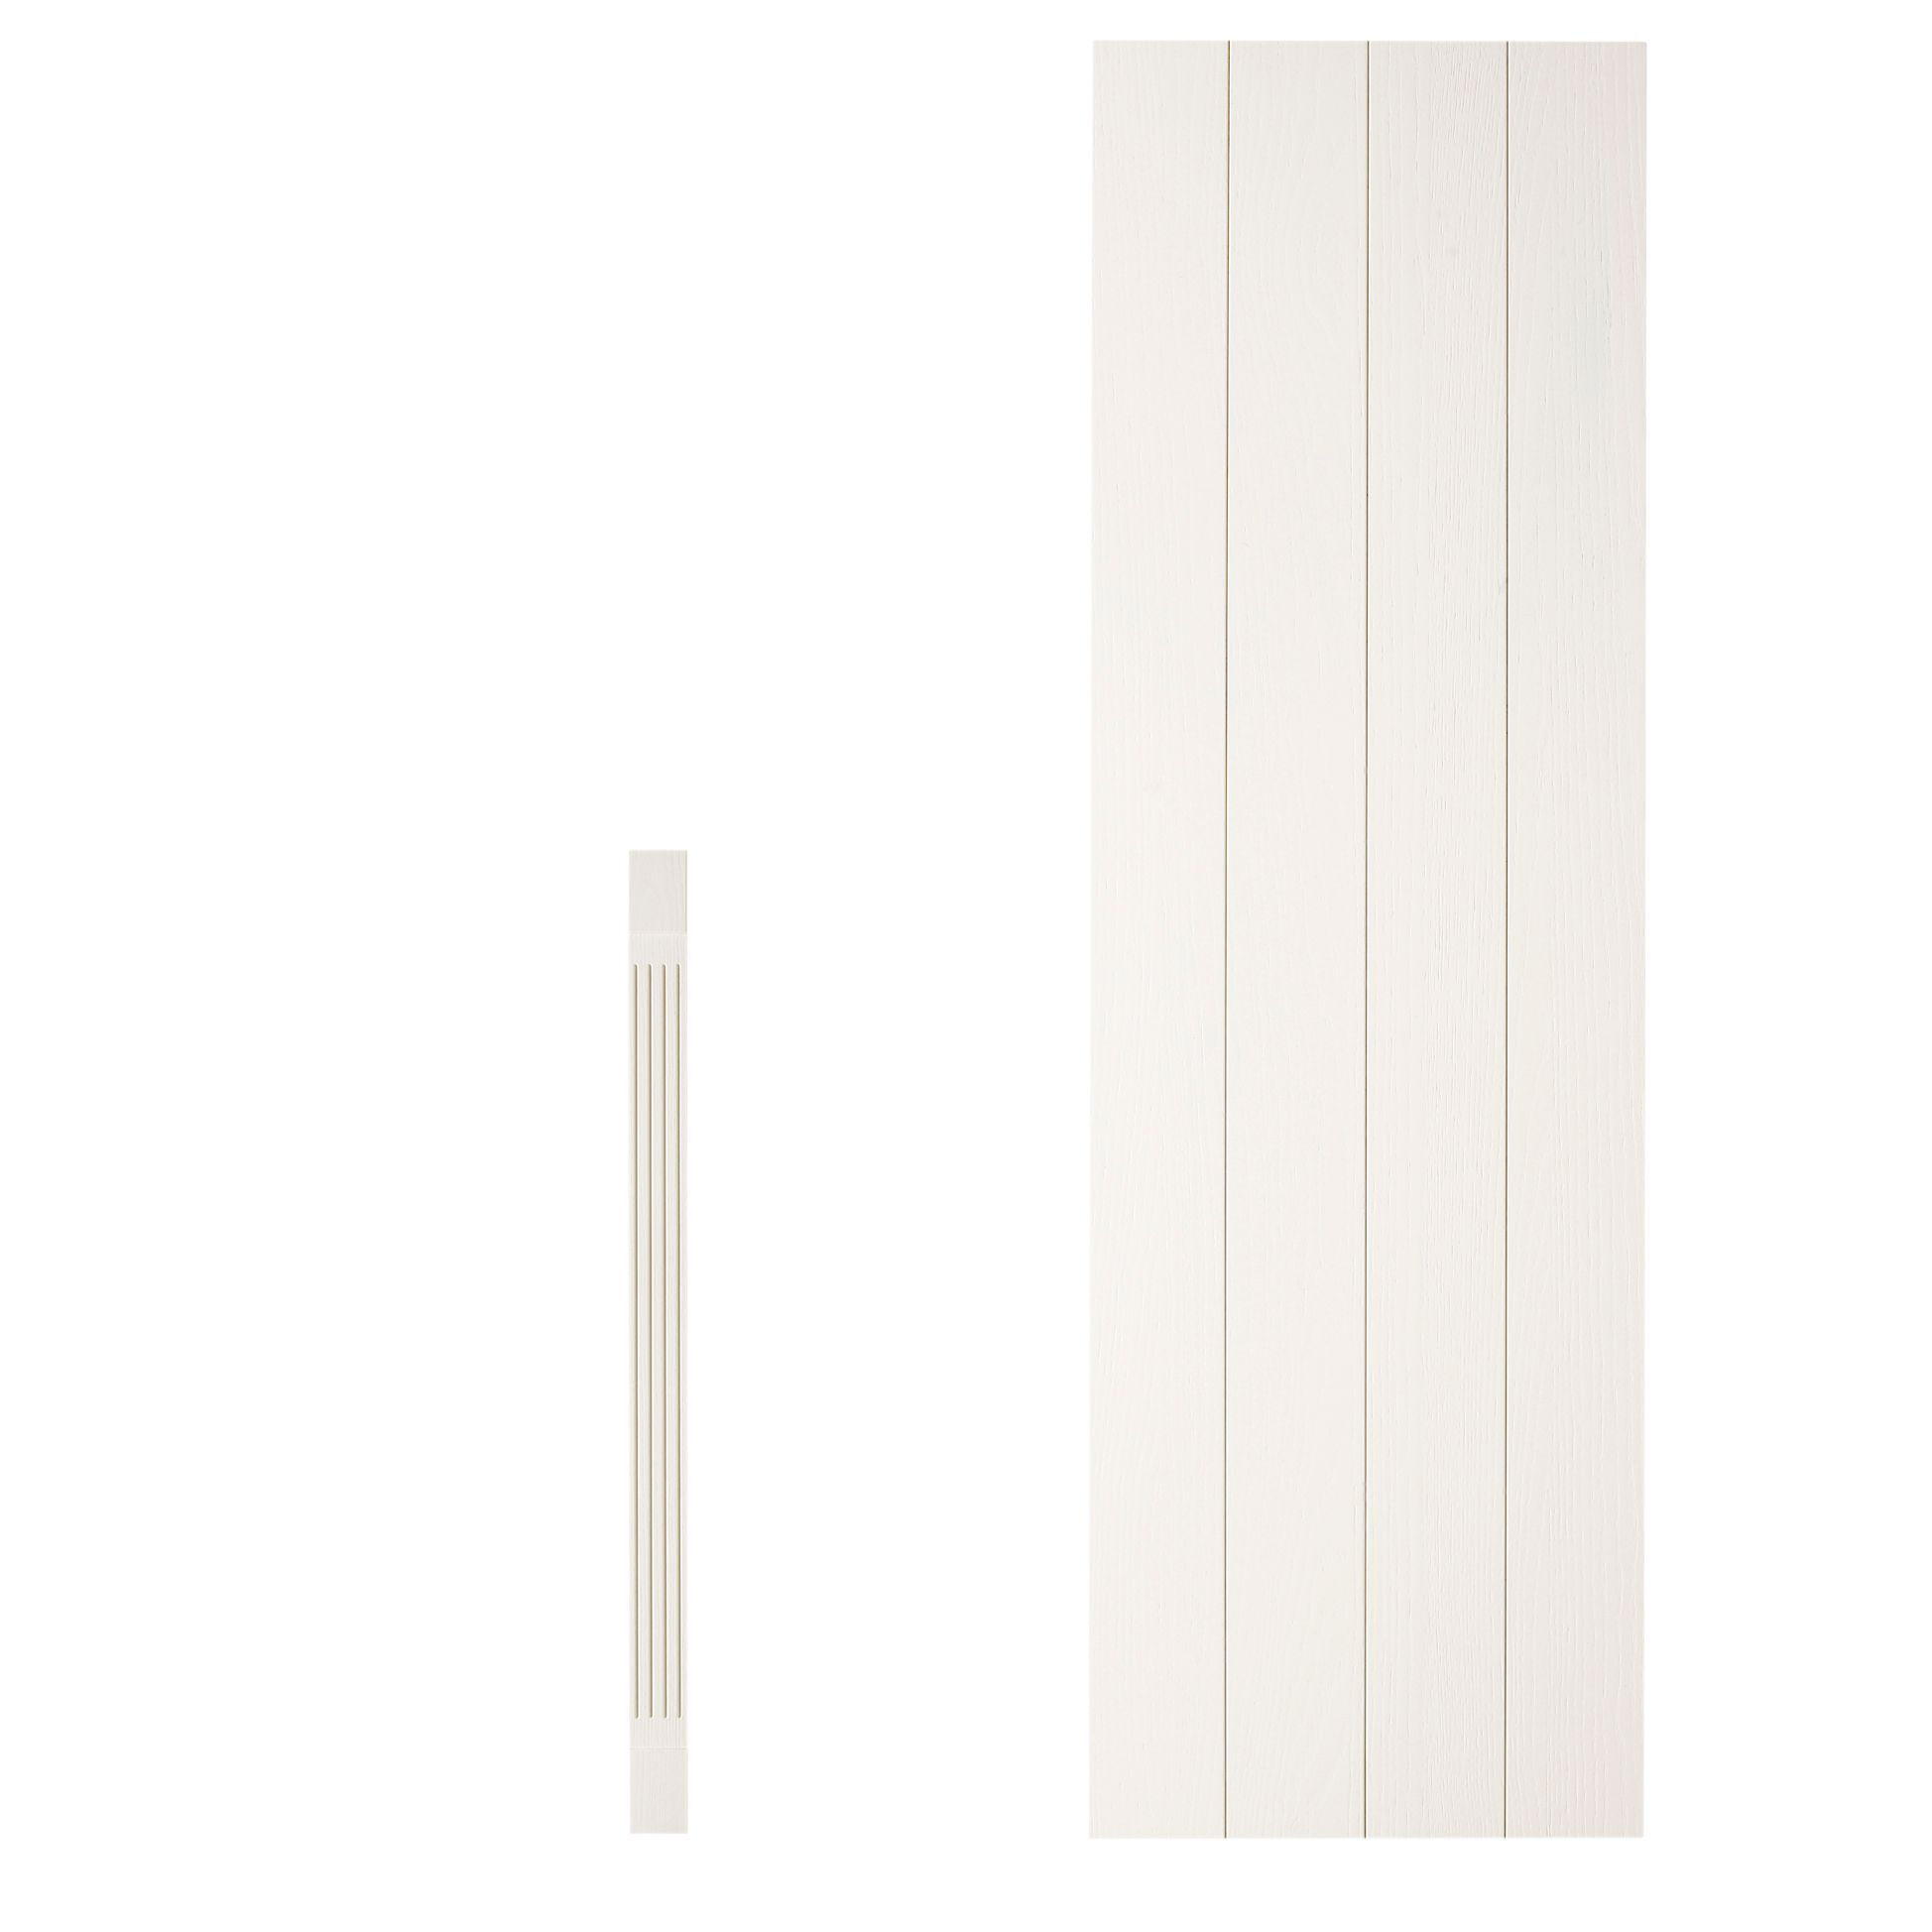 Picture Of Car >> Cooke & Lewis Carisbrooke Square dresser pilaster kit (H)1342mm (W)115mm (D)355mm | Departments ...